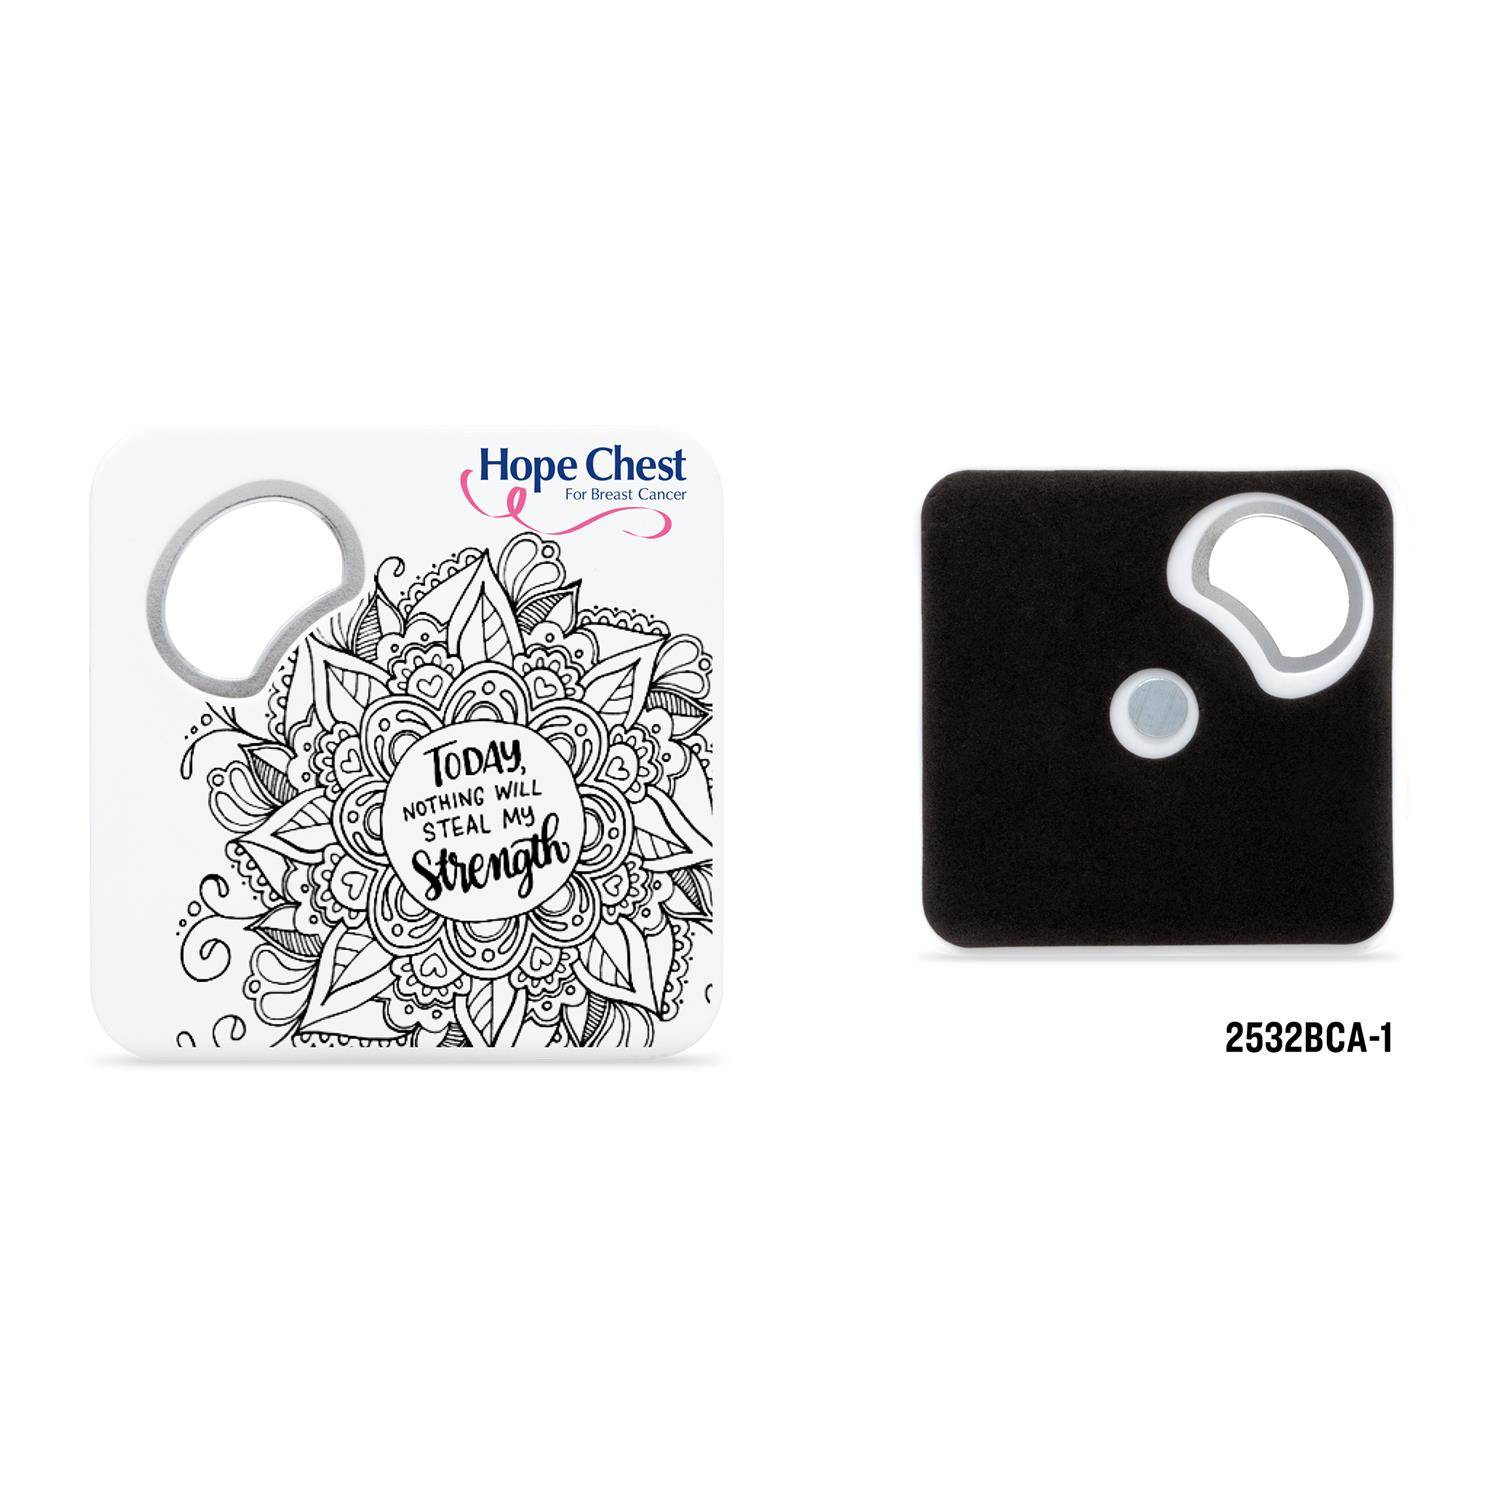 Color Me Magnetic Coaster With Bottle Opener